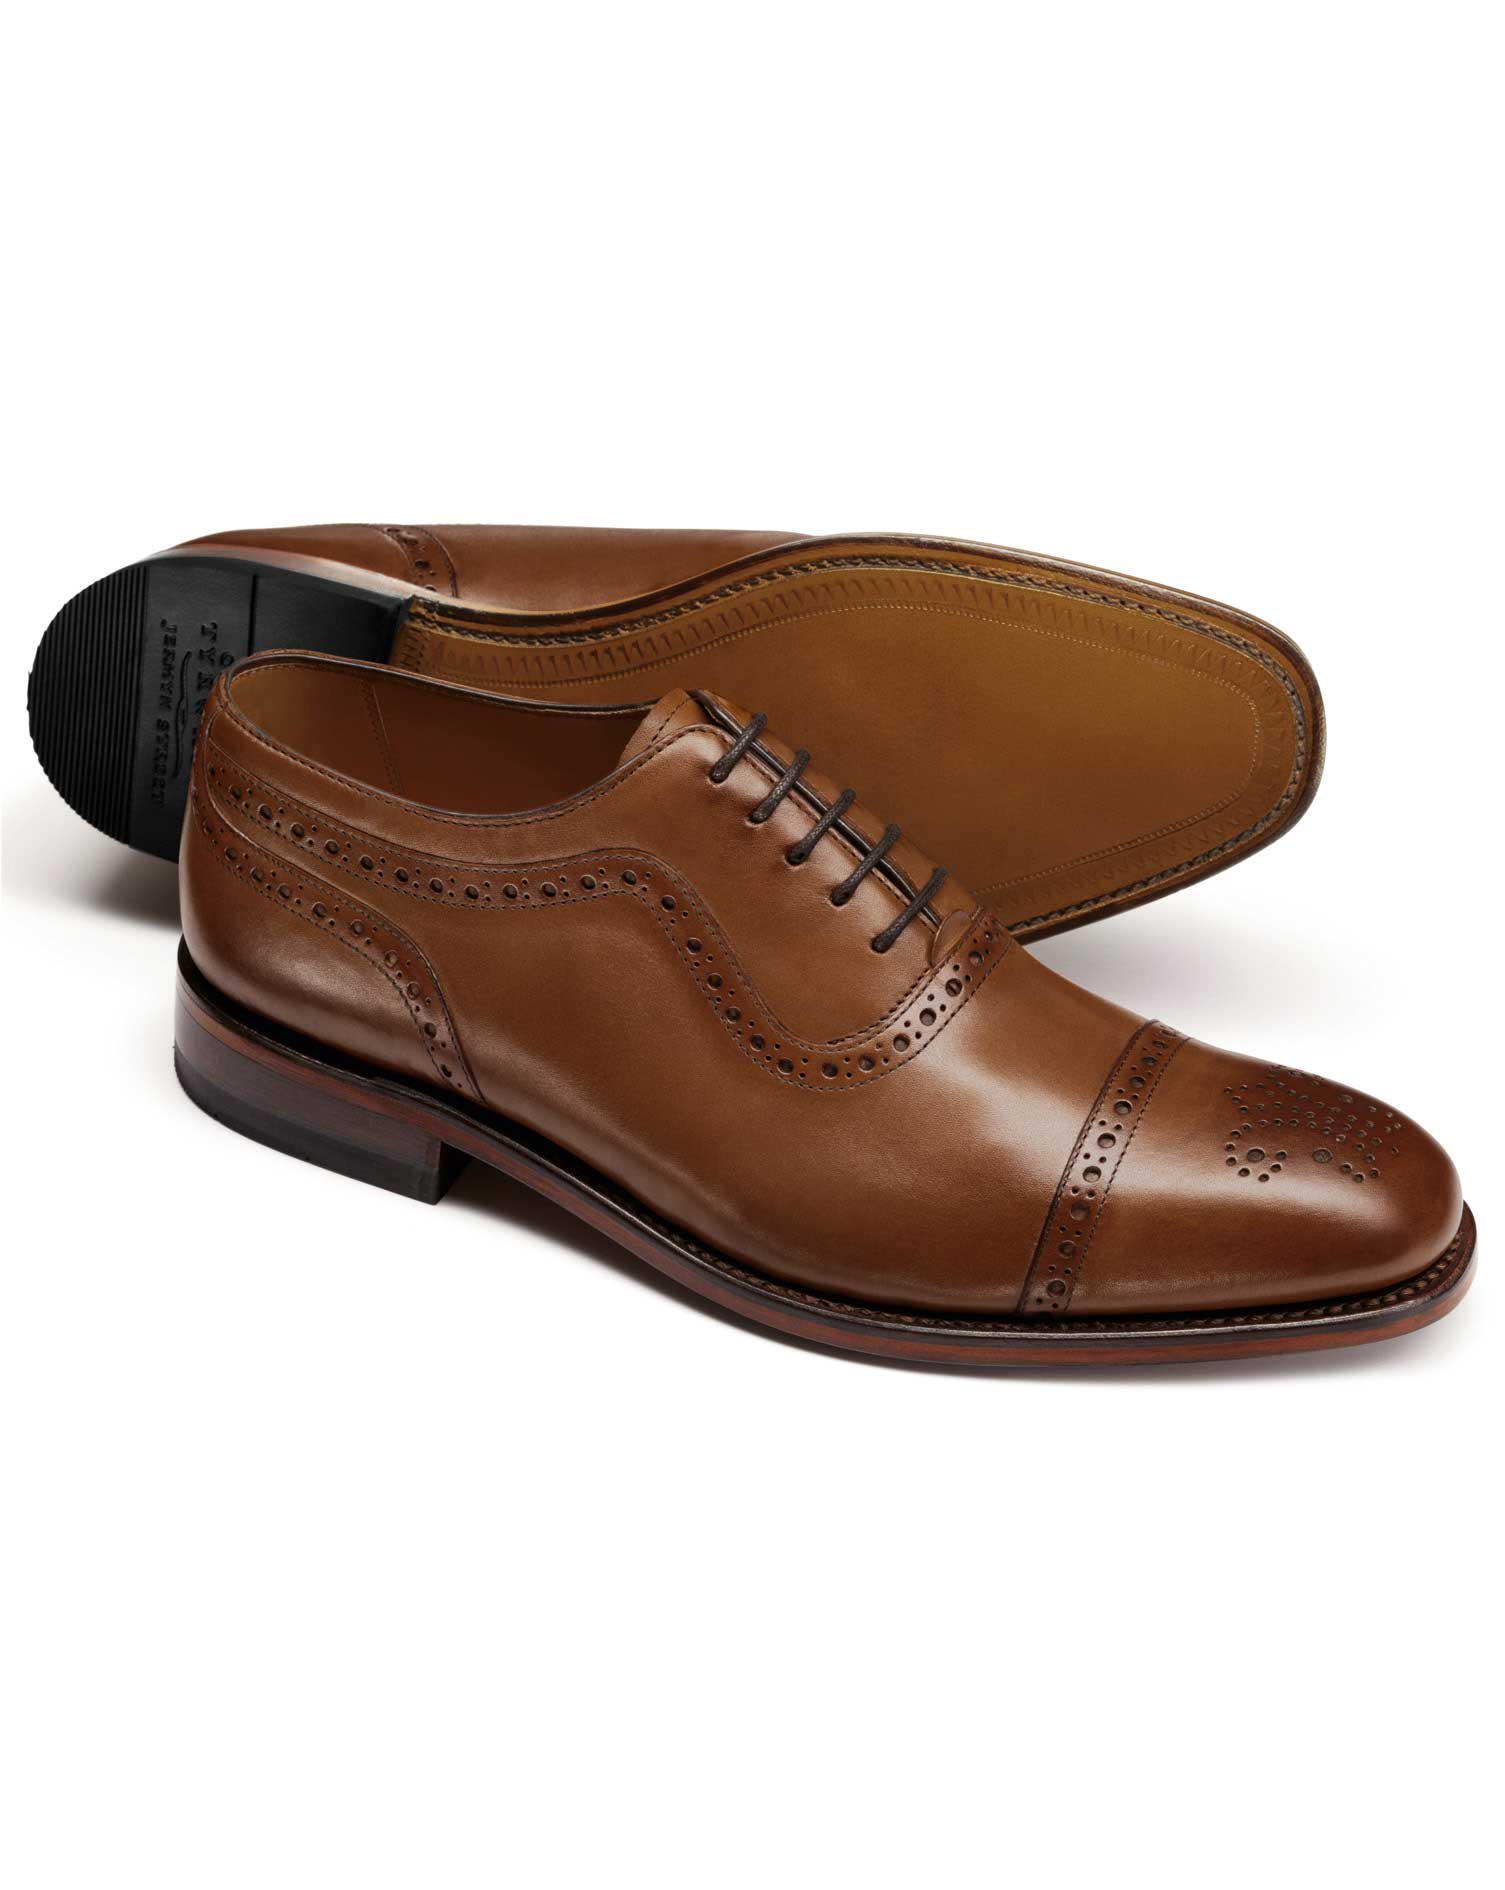 359b04b550a Brown Goodyear welted Oxford brogue shoe